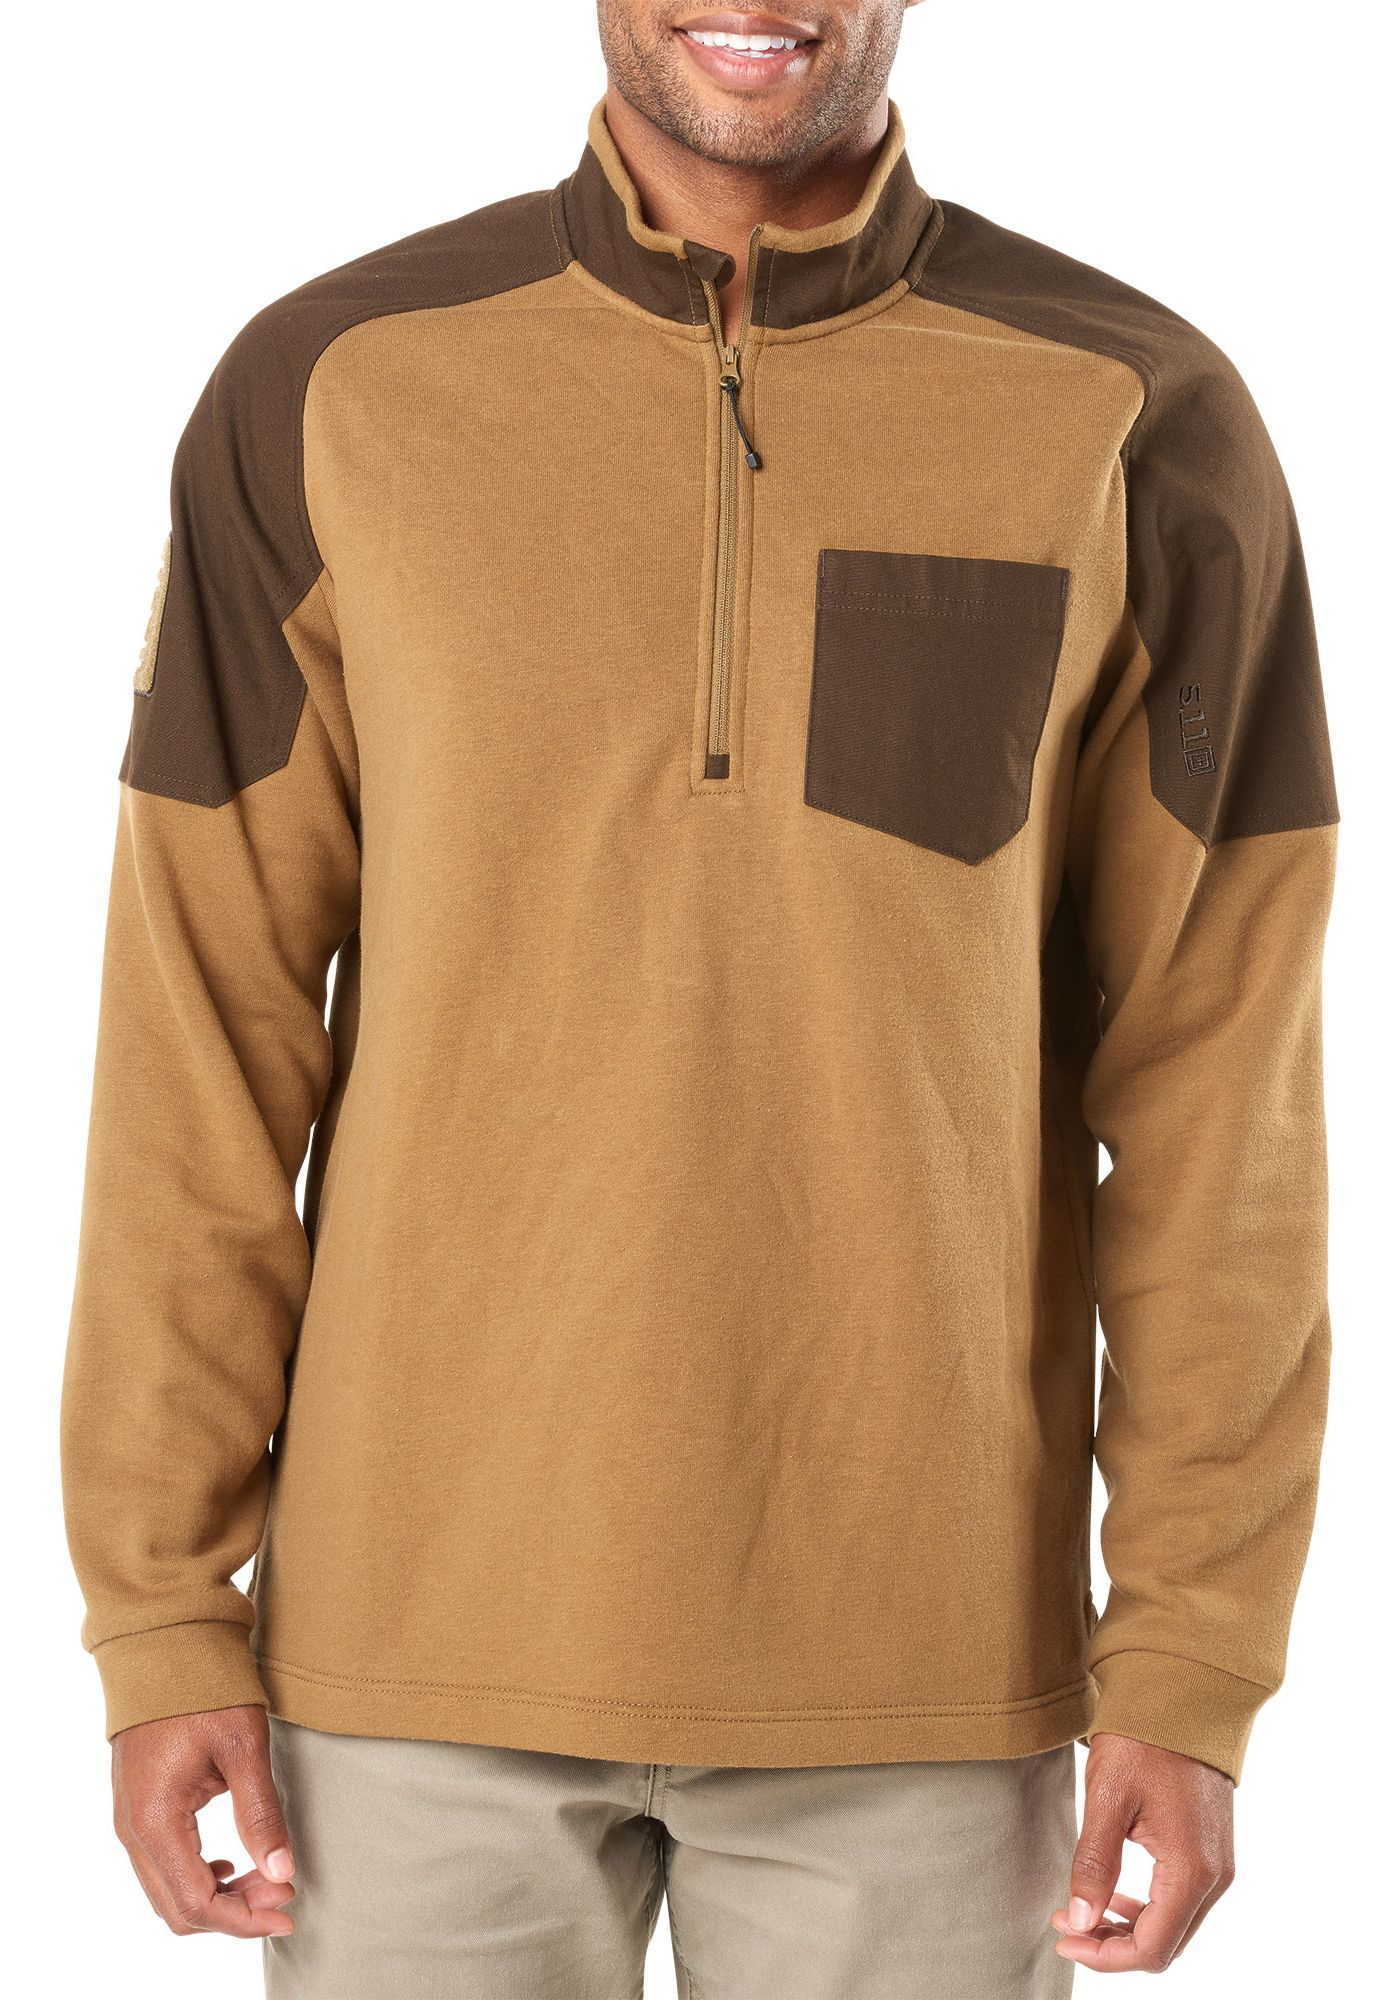 5.11 Tactical Men's Radar Fleece Half Zip